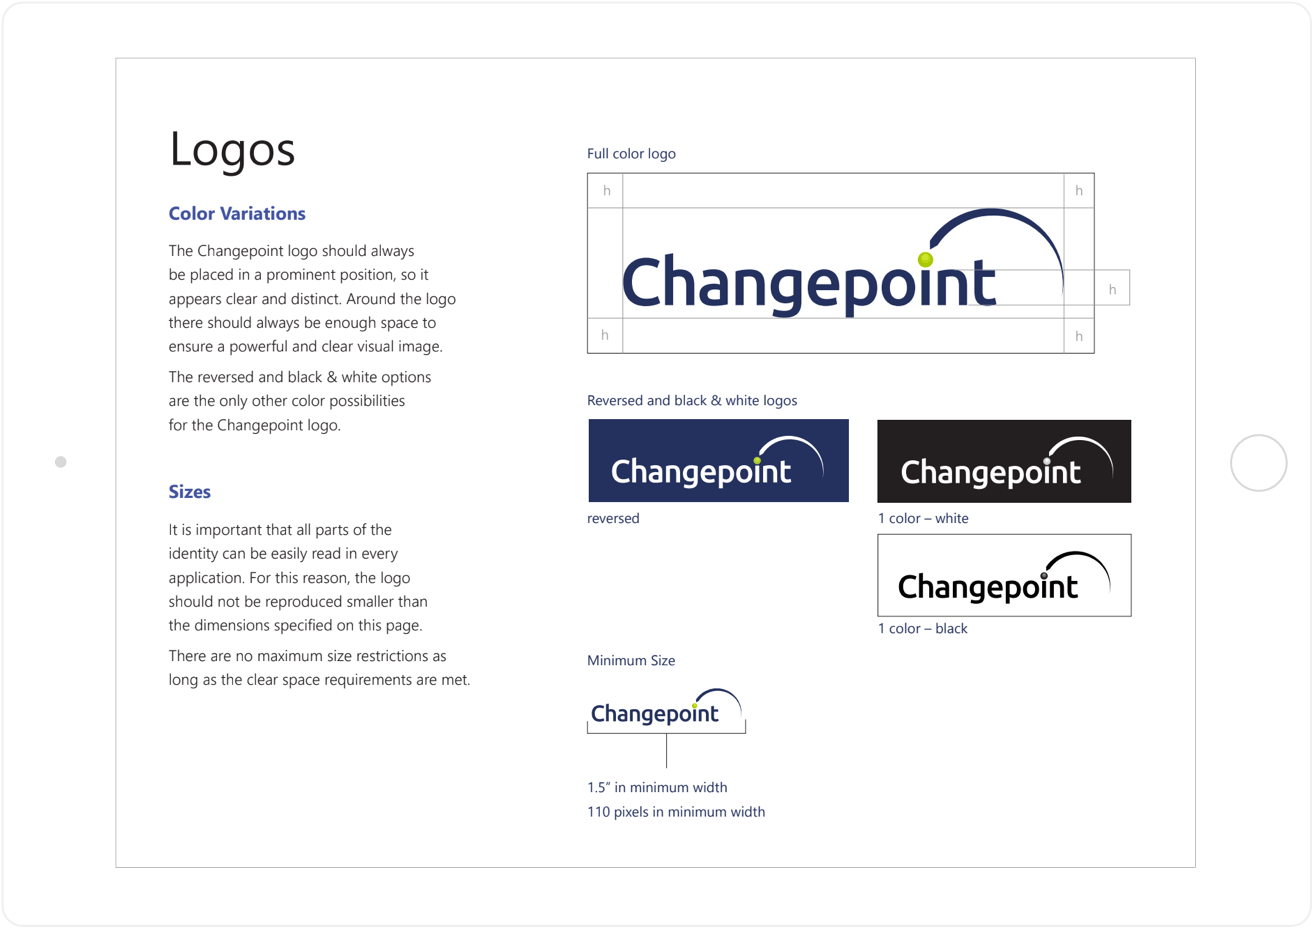 Changepoint revamped logo